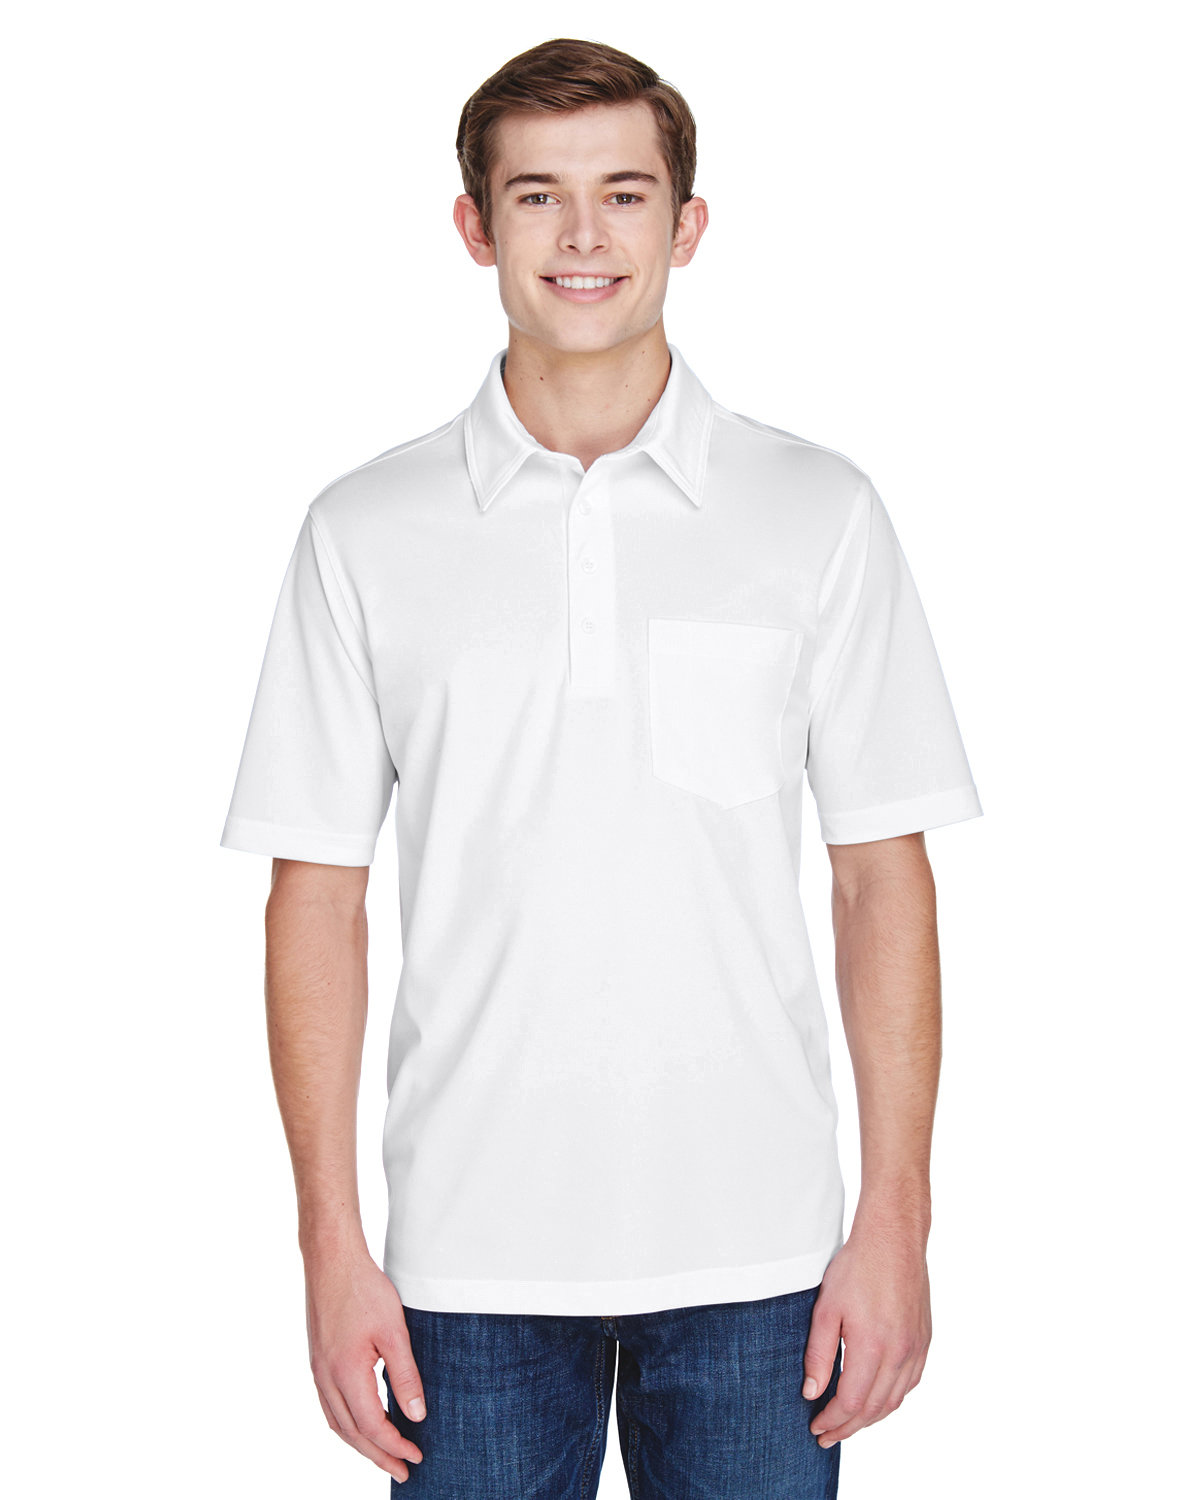 Extreme Men's Eperformance™ Shift Snag Protection Plus Polo WHITE